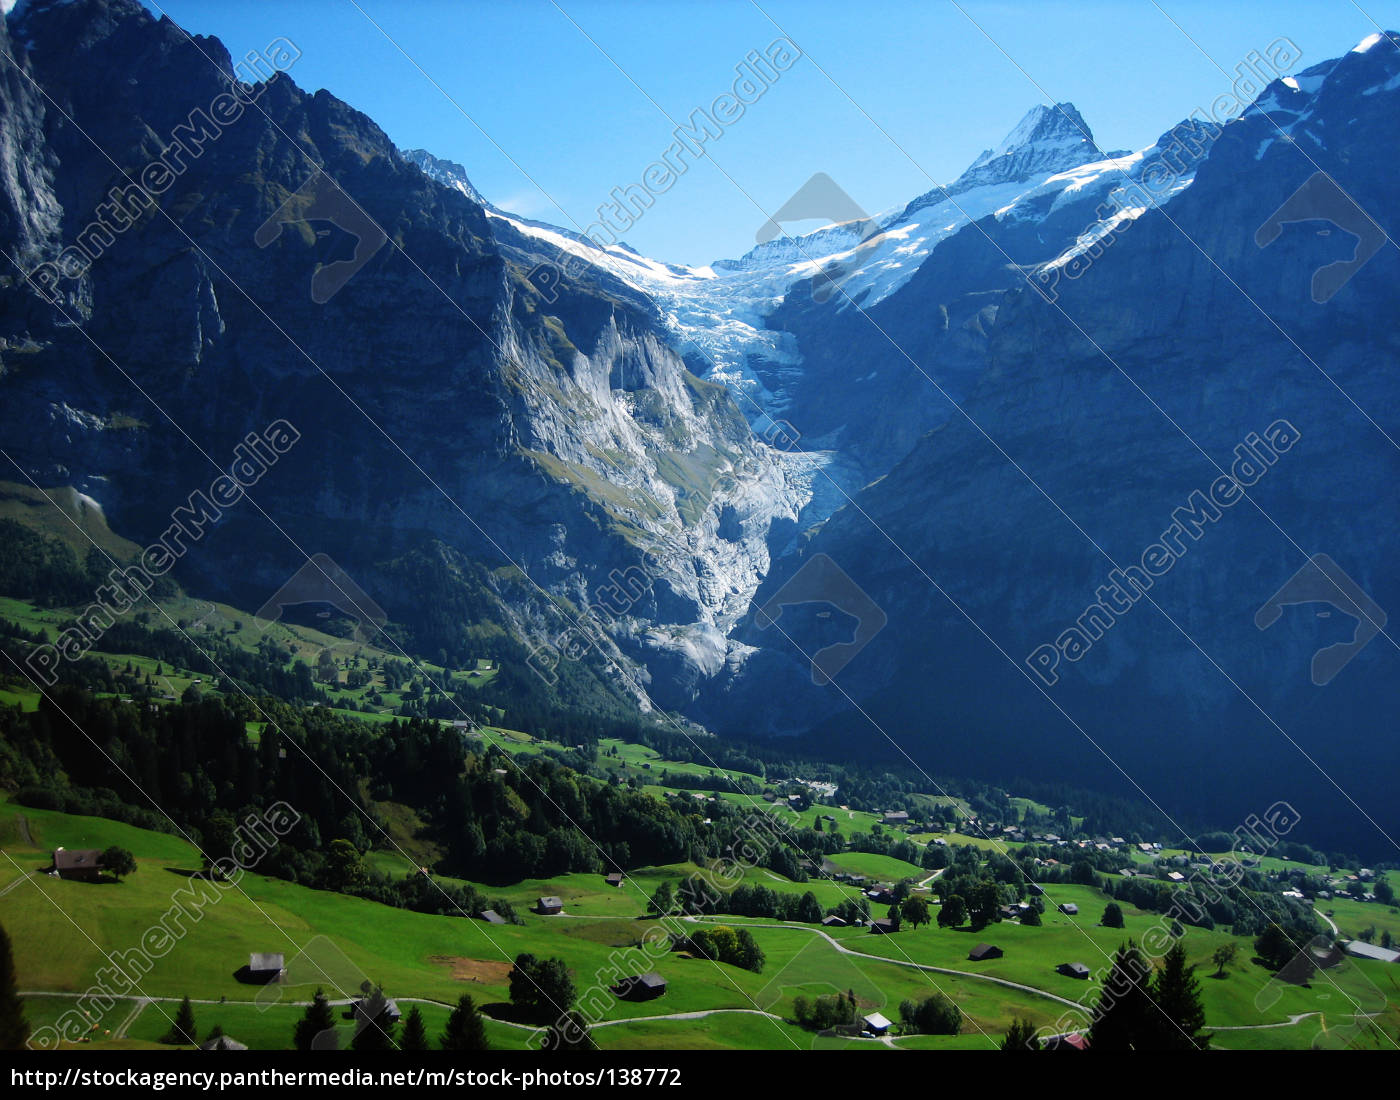 swiss, nature - 138772